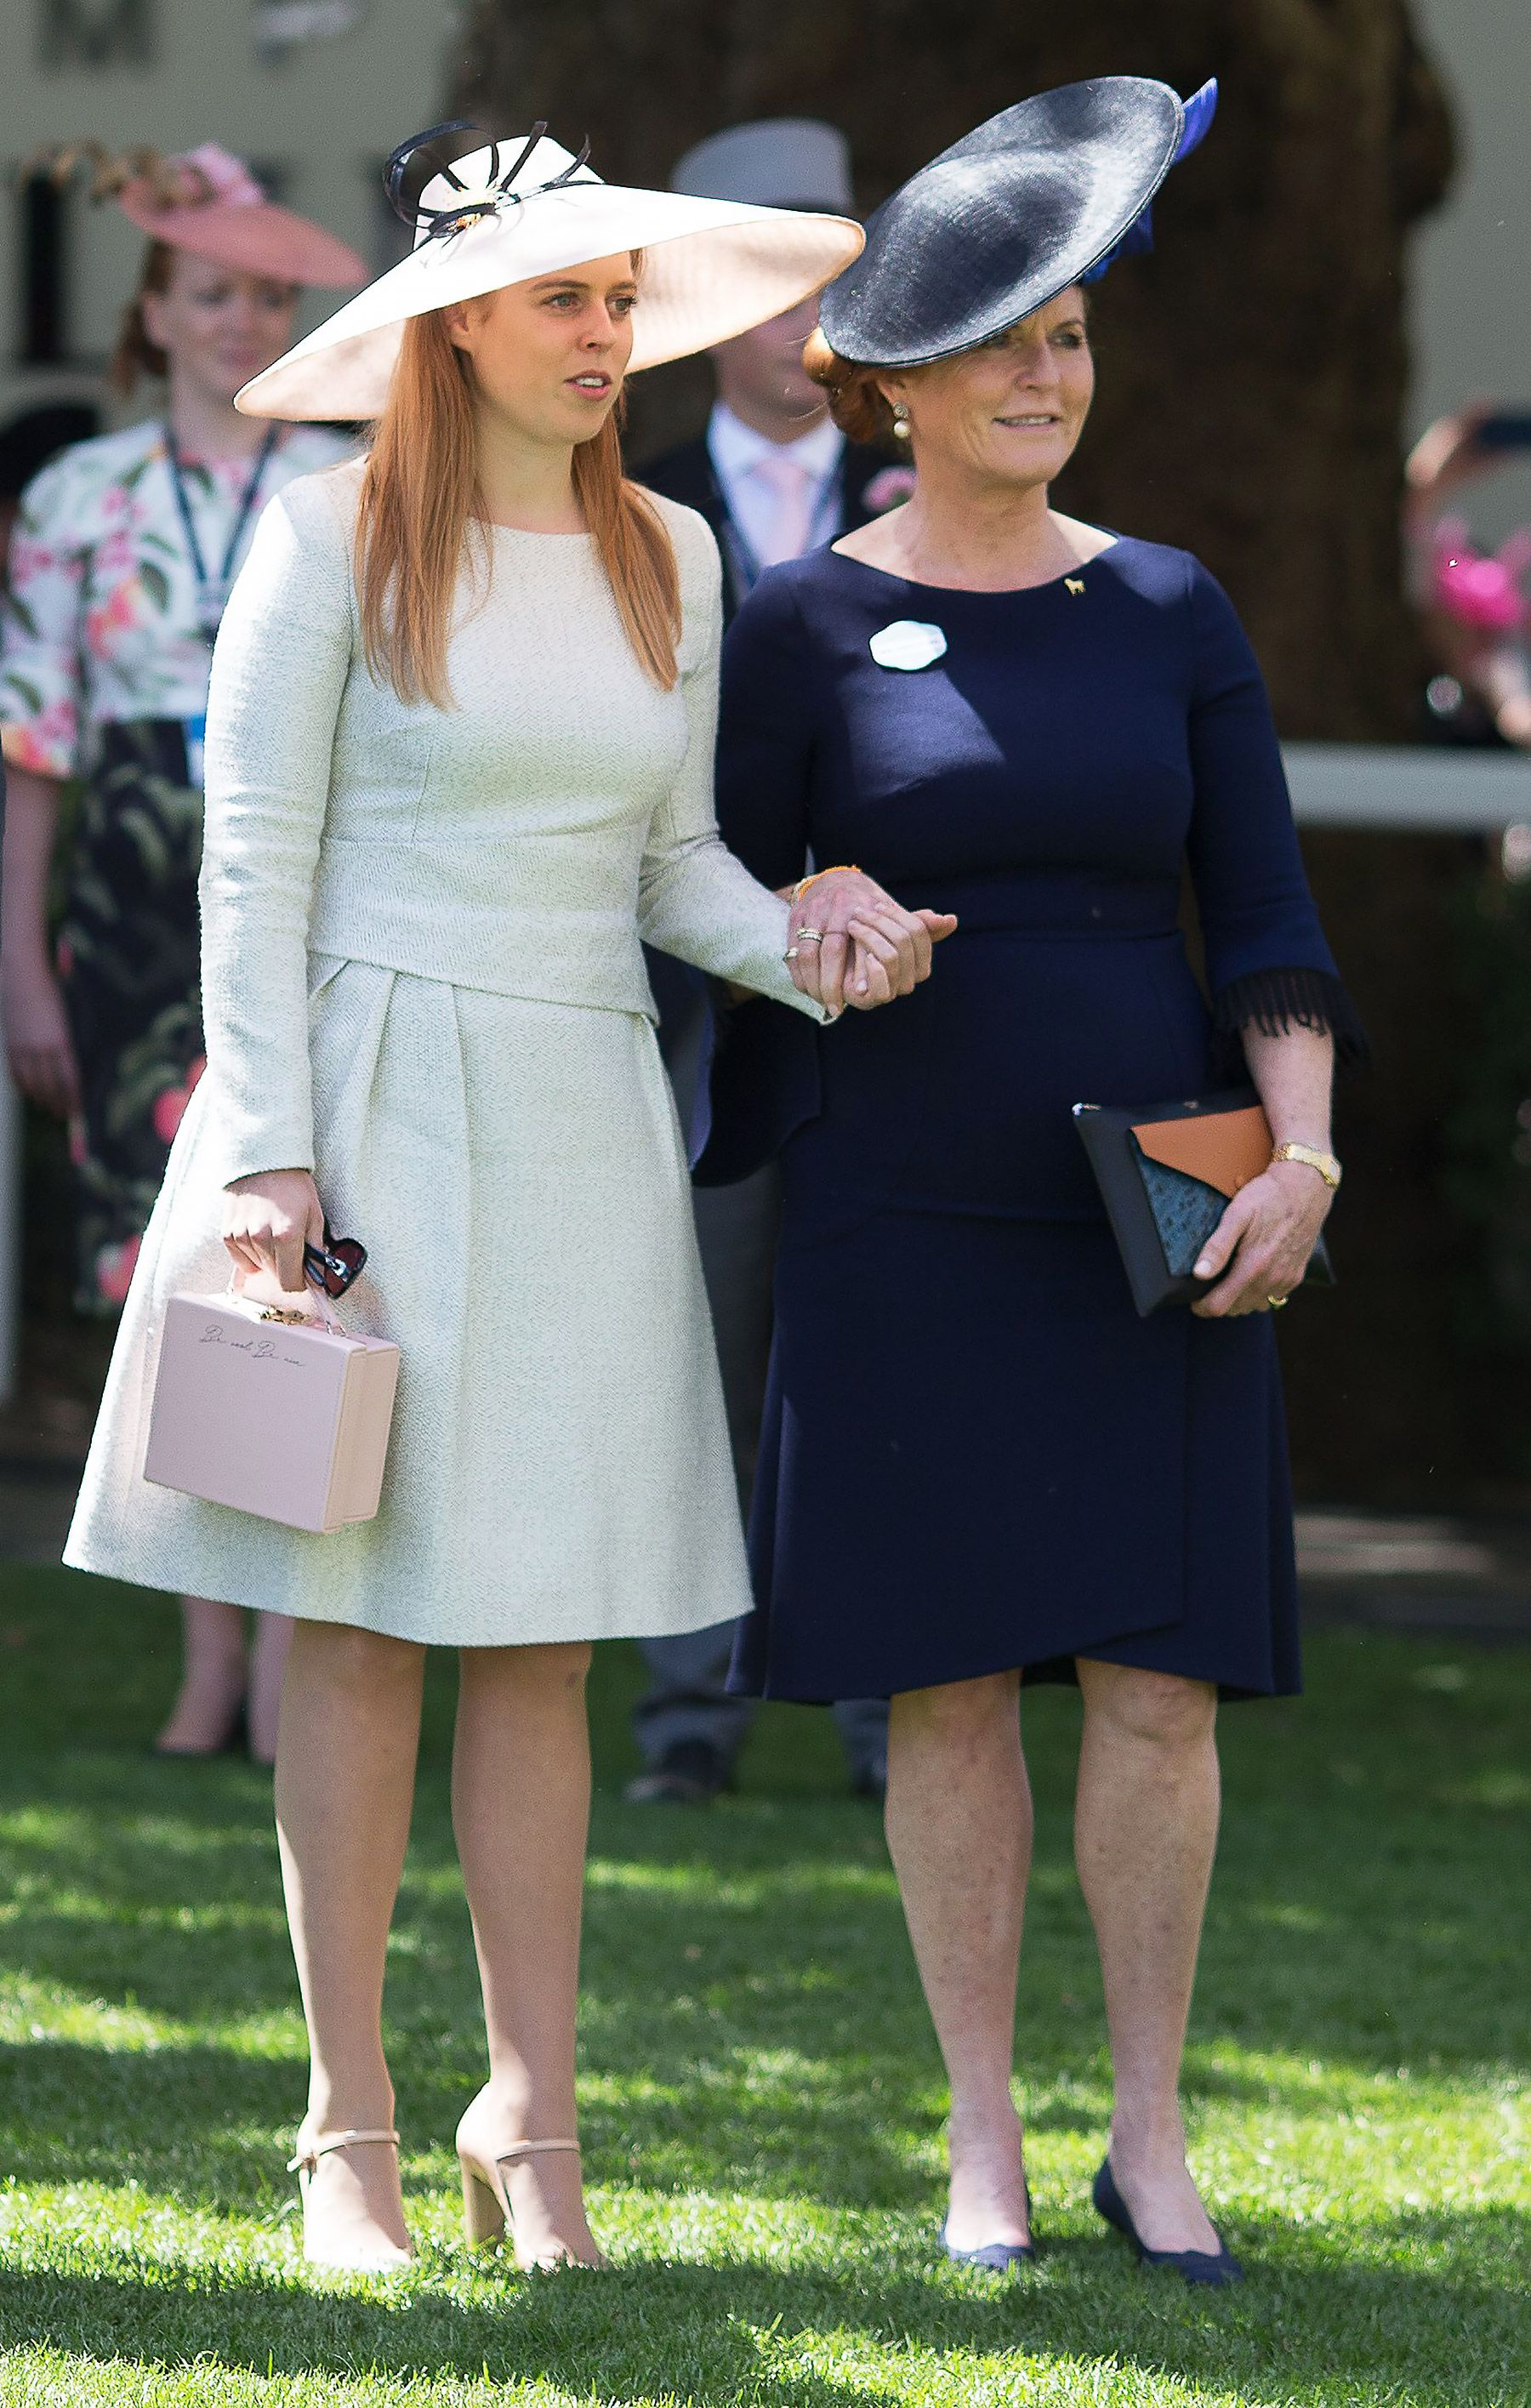 Fergie and the Queen! The RedHaired Duchess Lands a